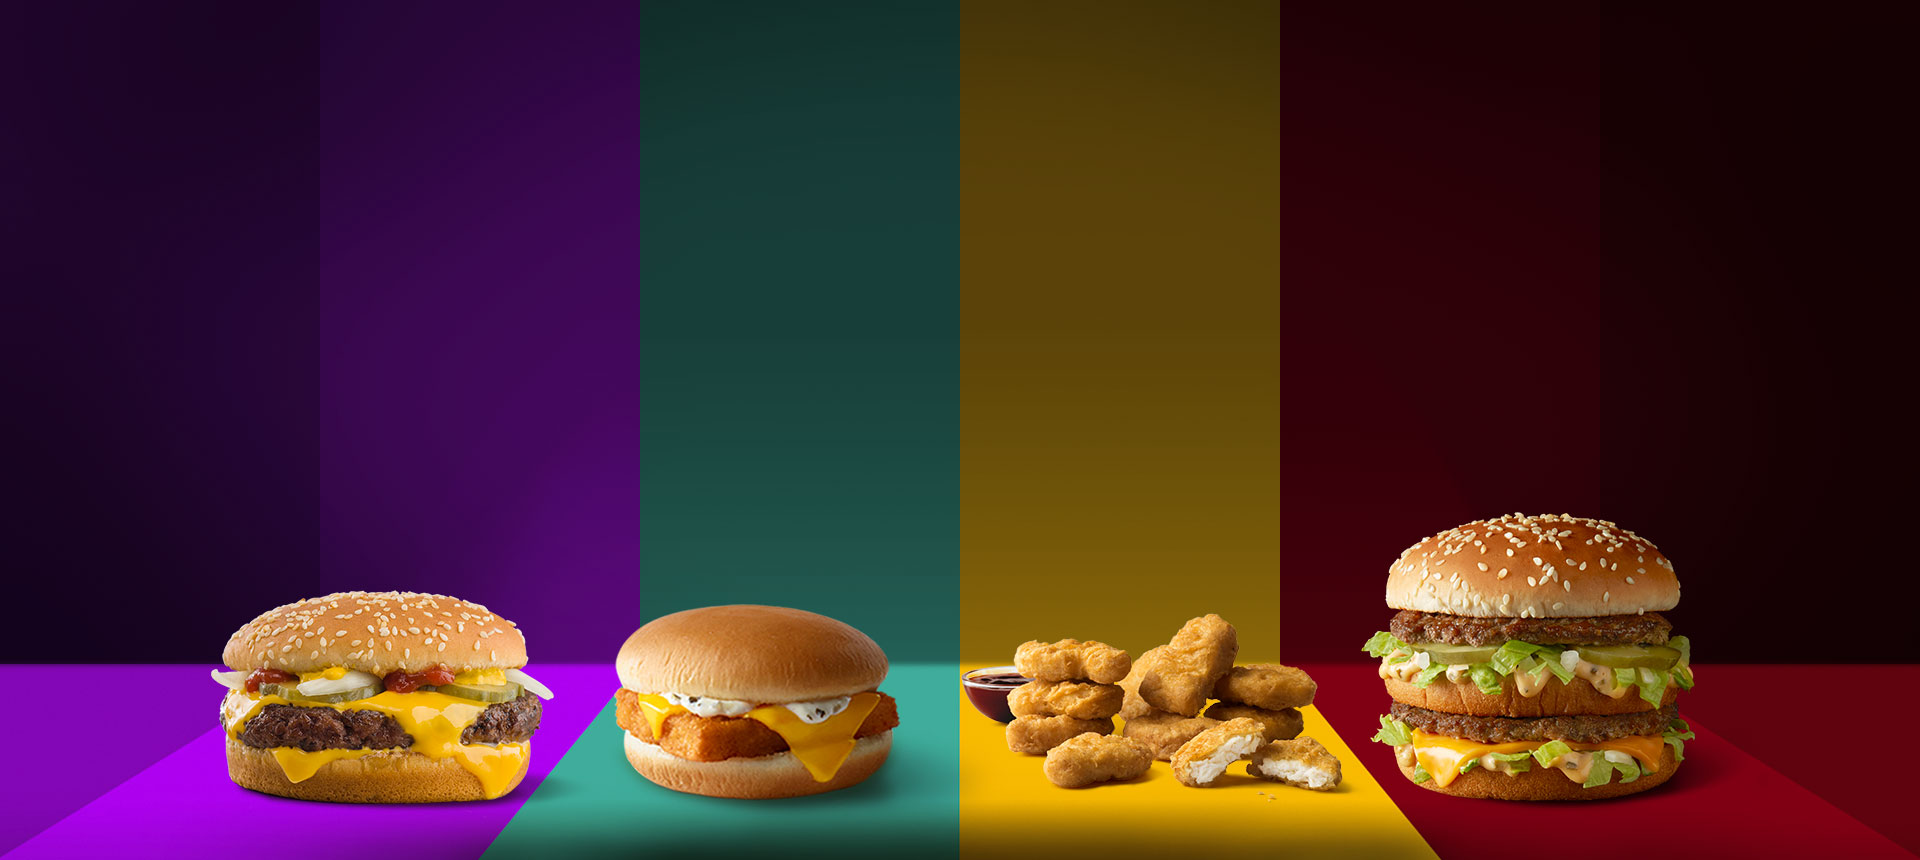 Mcdonalds Burgers Fries More Quality Ingredients